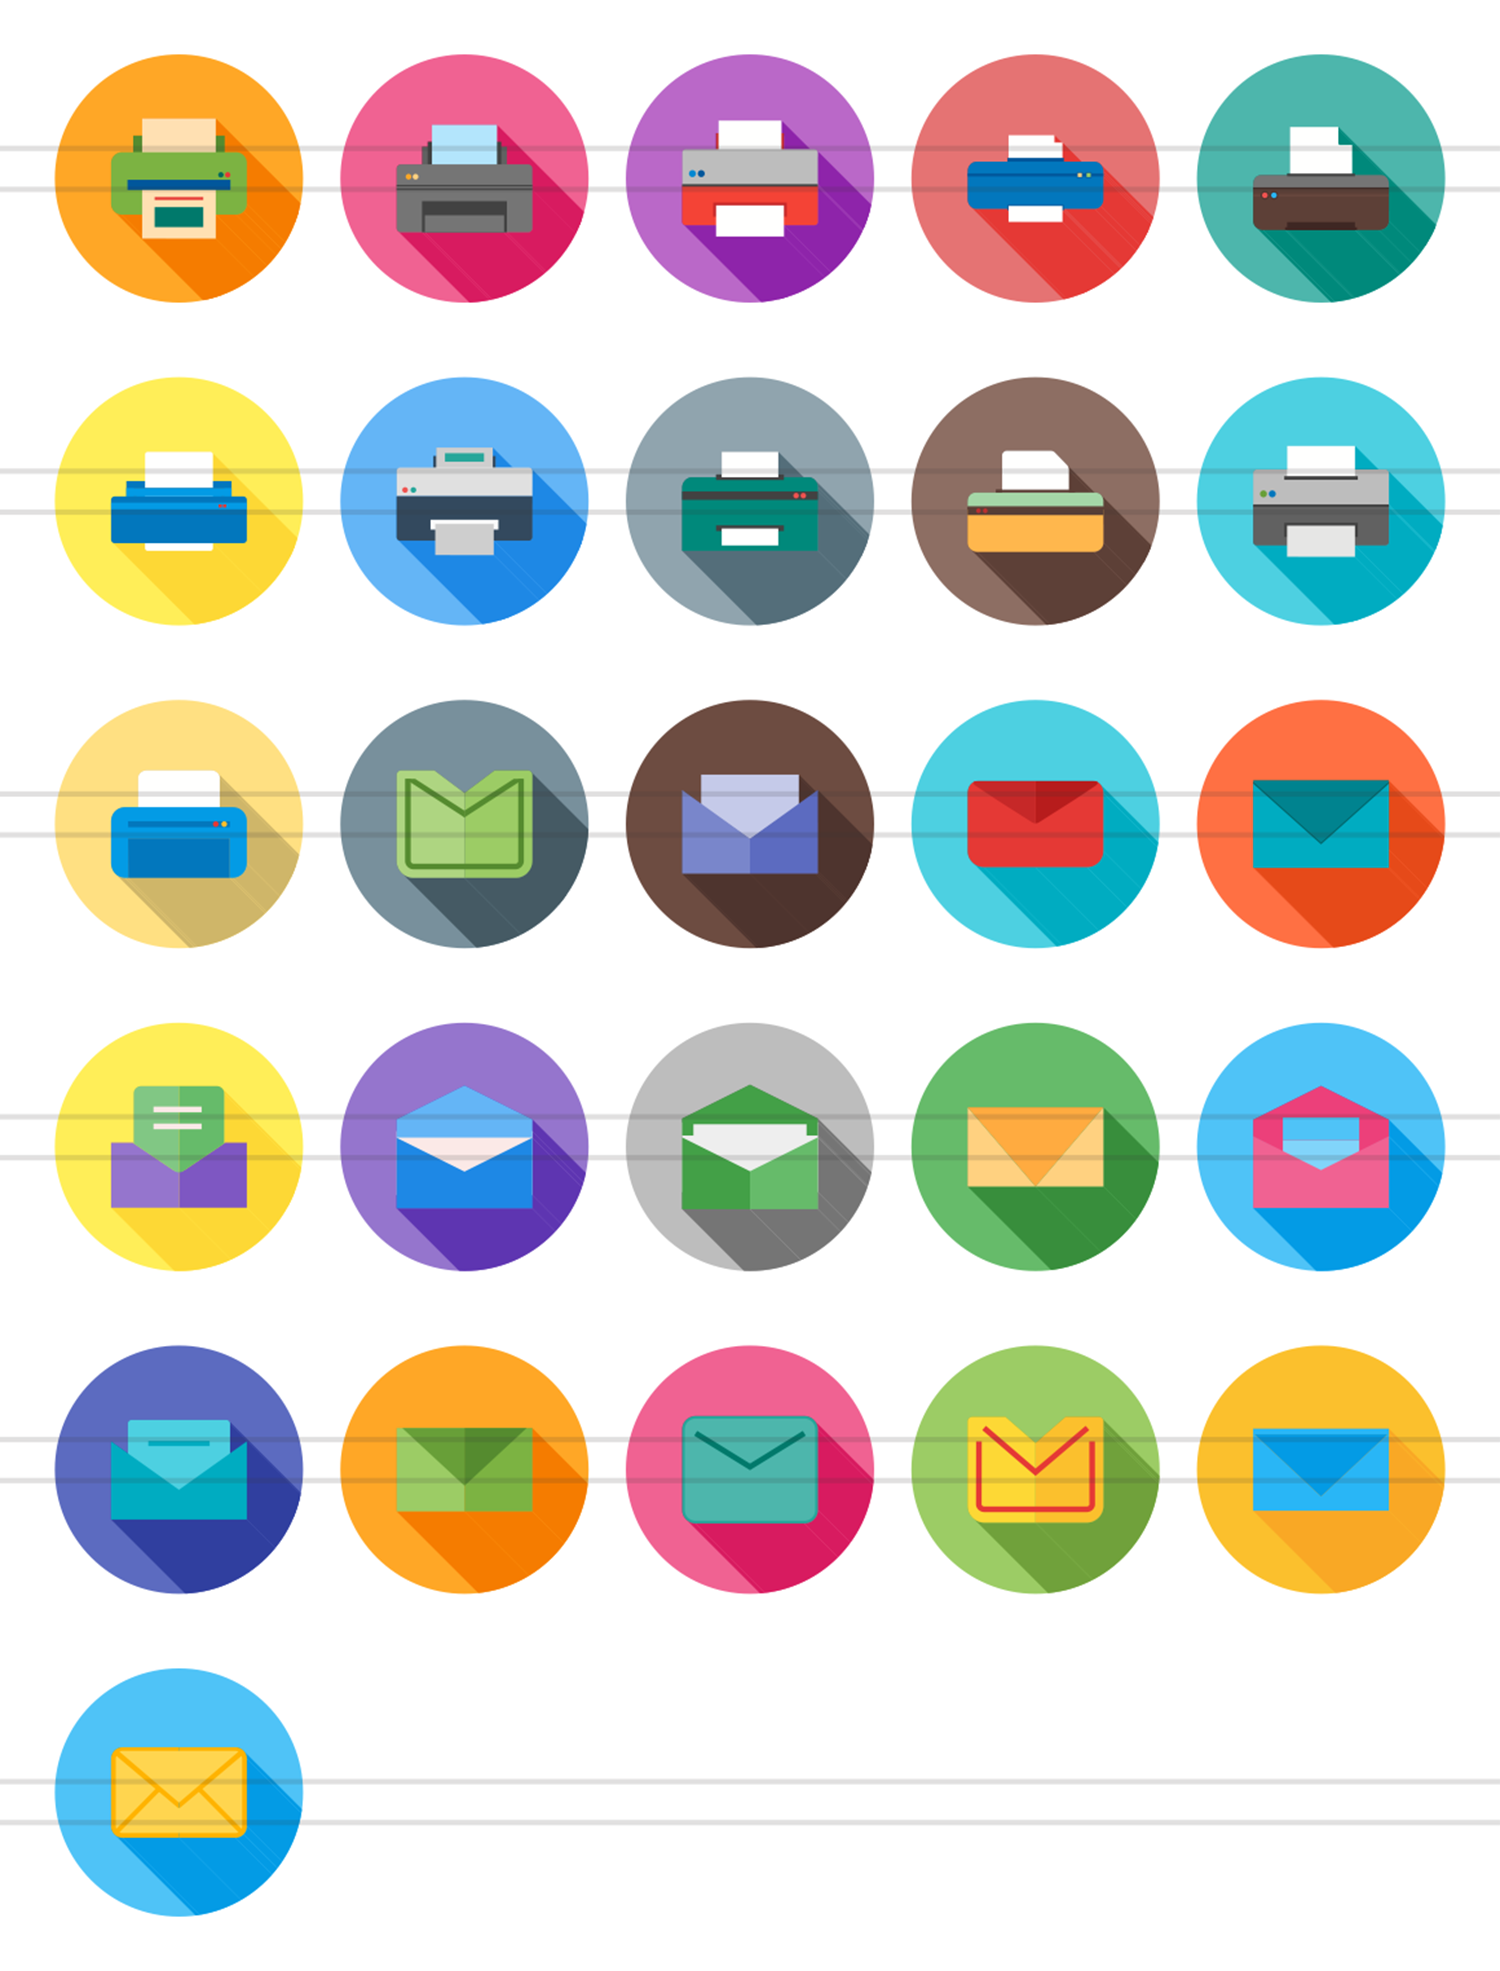 26 Email & Printer Flat Long Shadow Icons example image 2